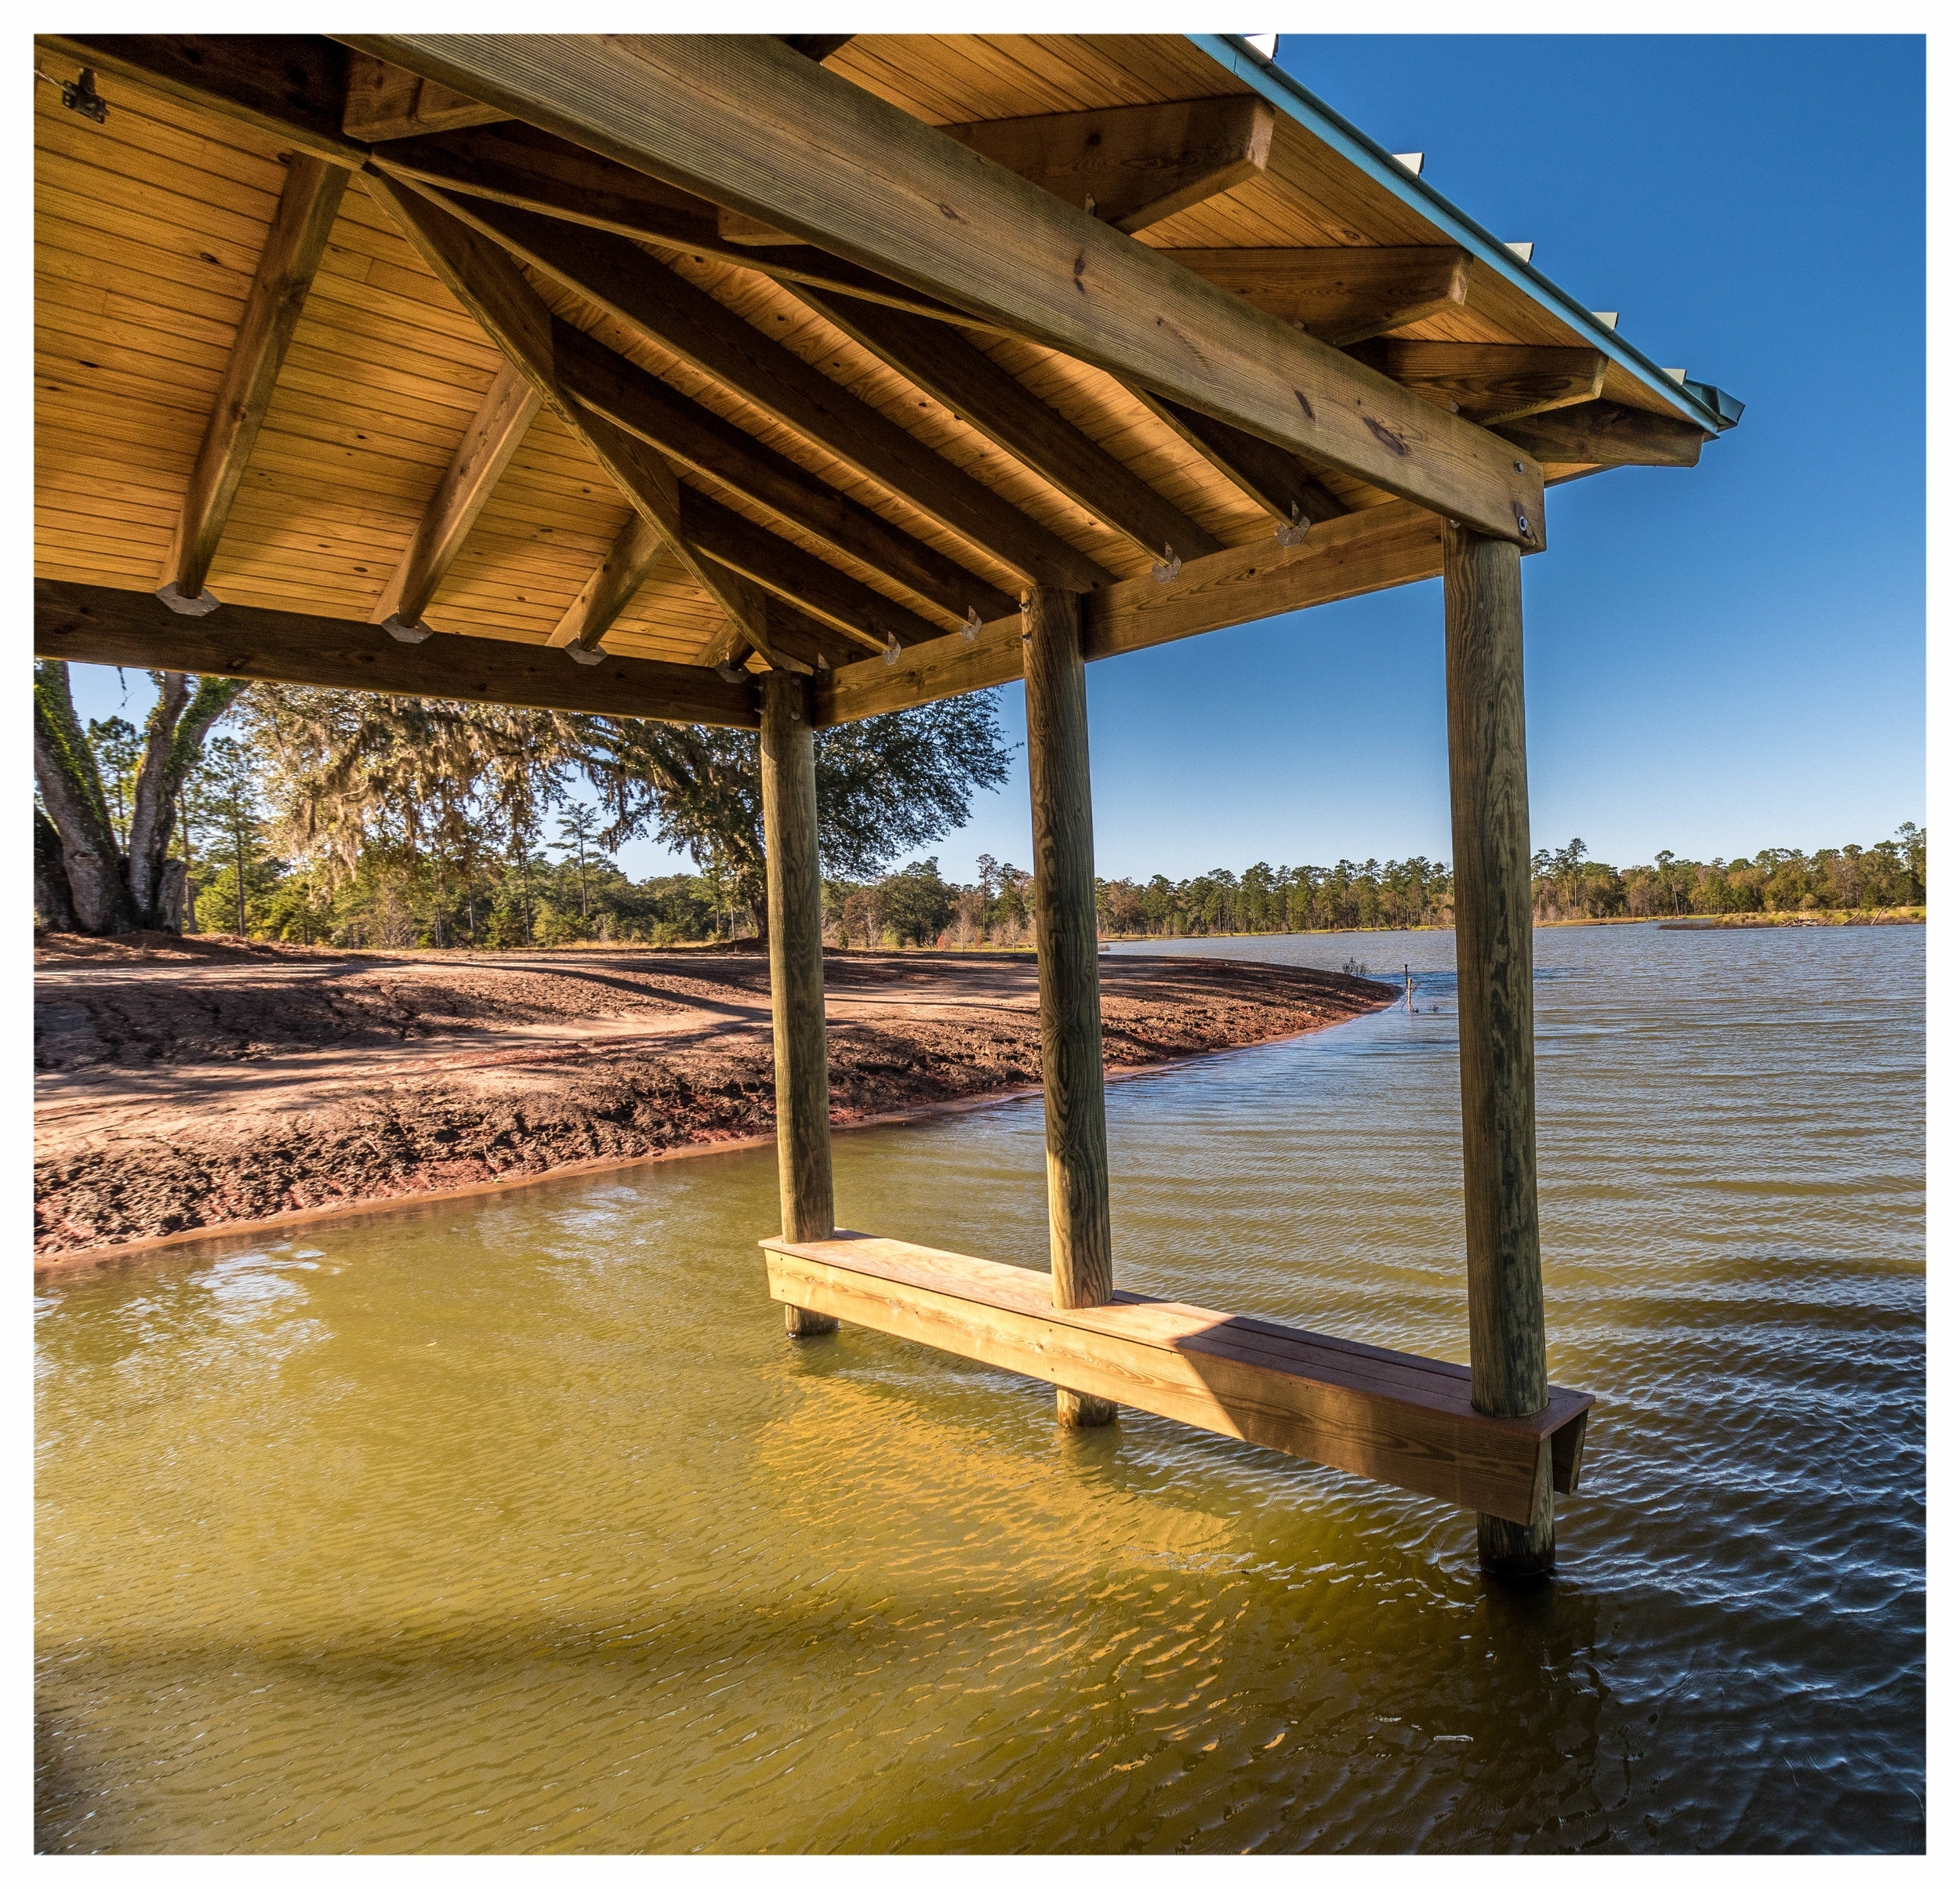 Boat dock and Boathouse Construction